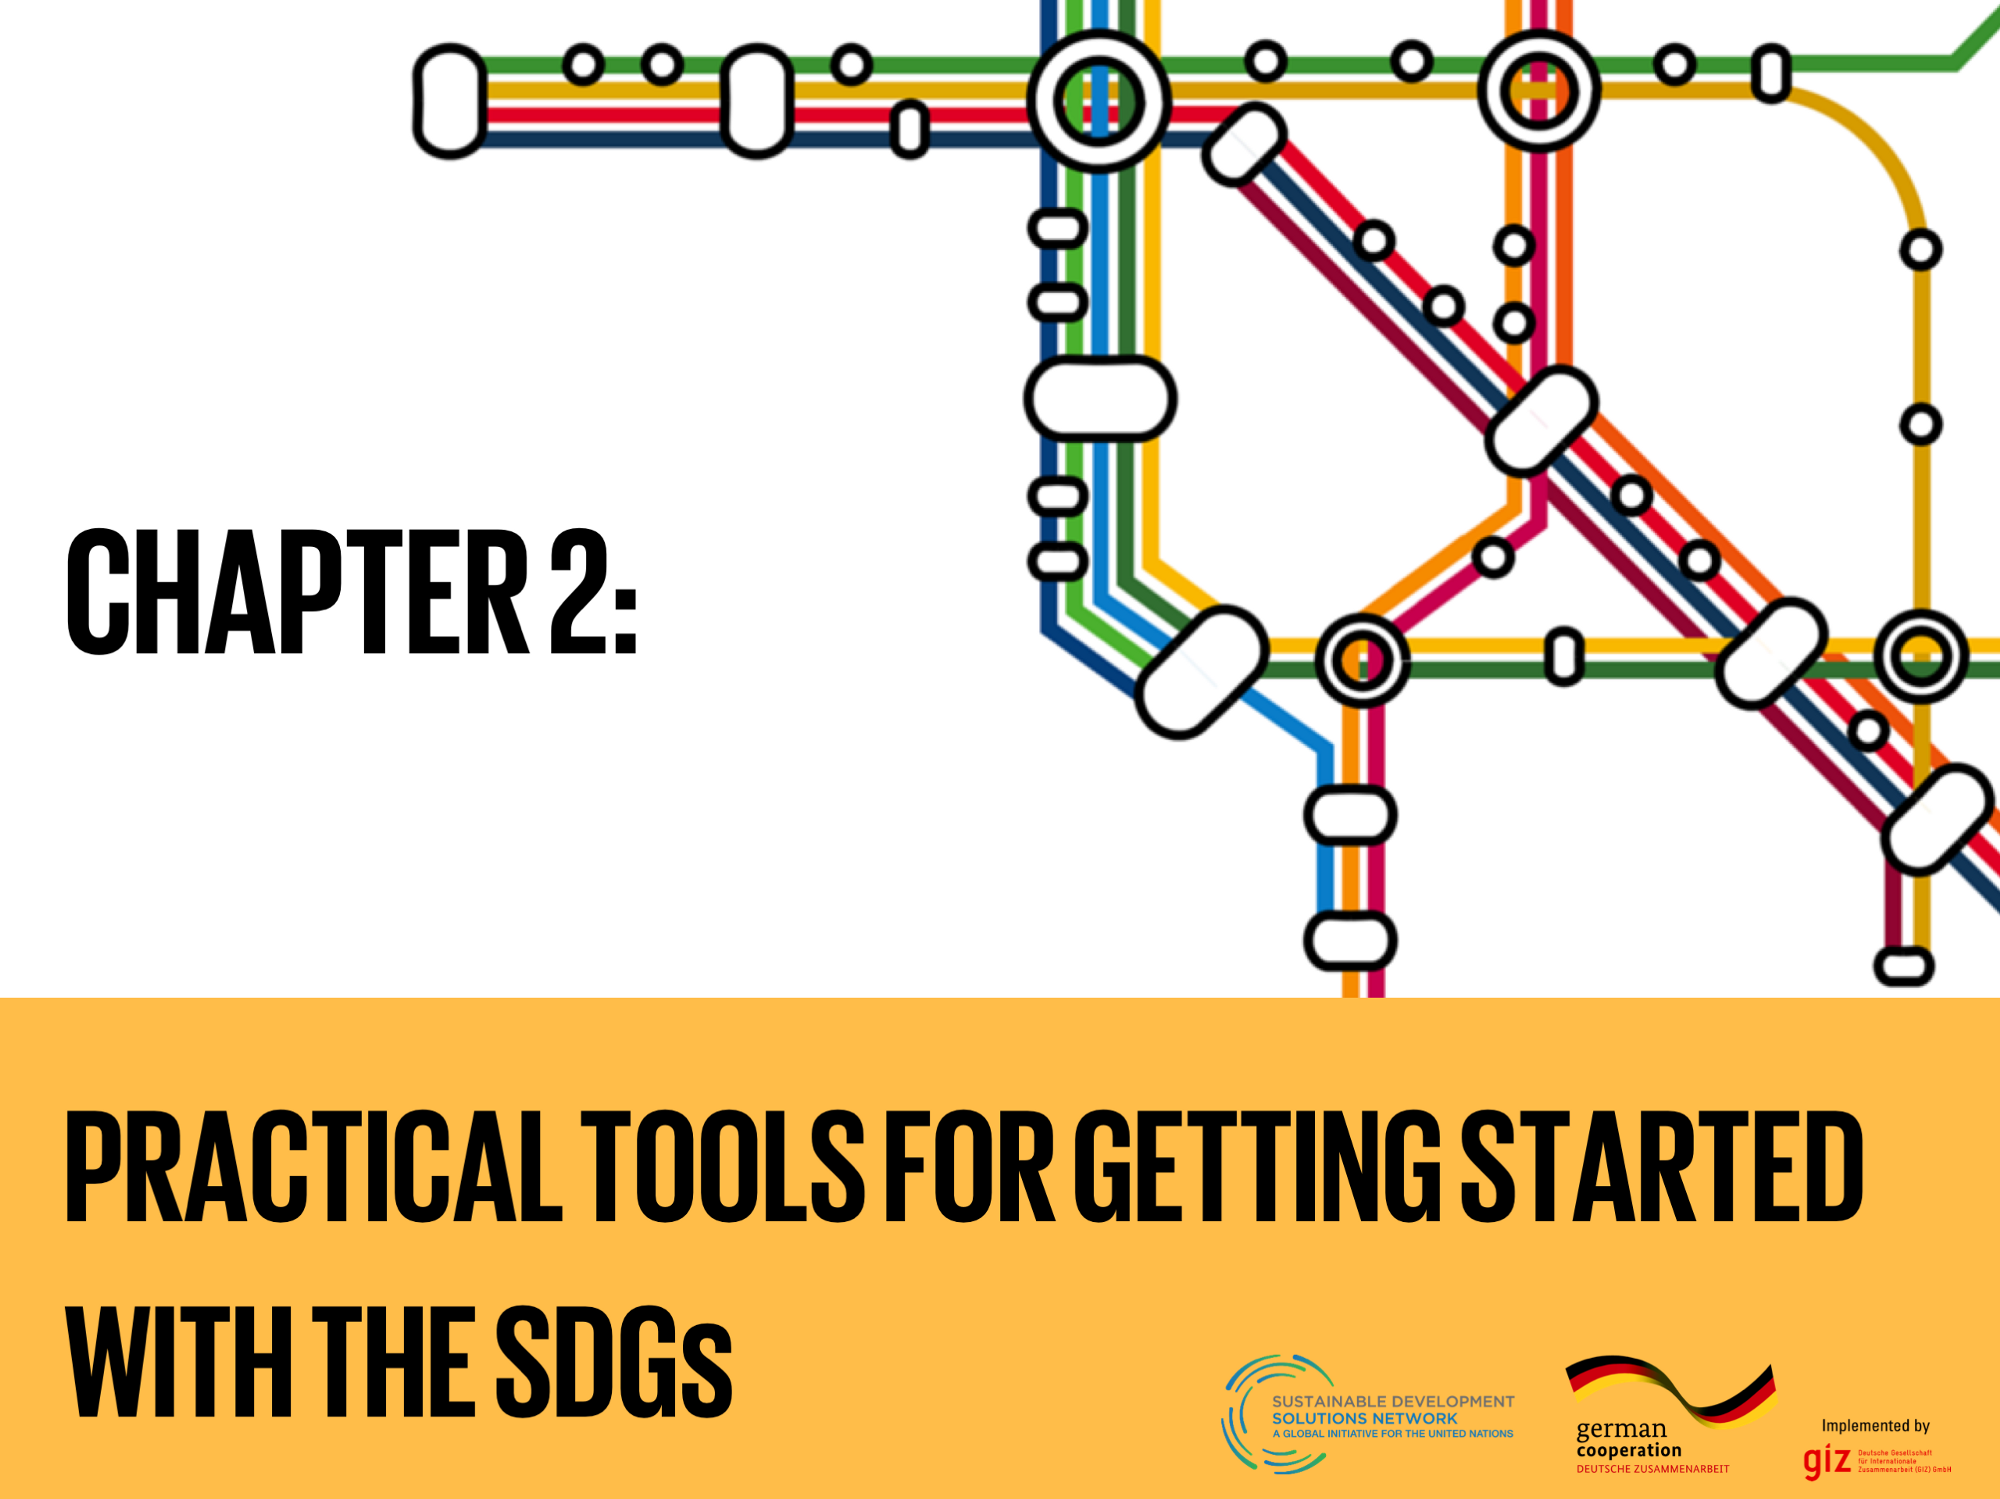 Chapter 2 Practical Tools For Getting Started With The SDGs